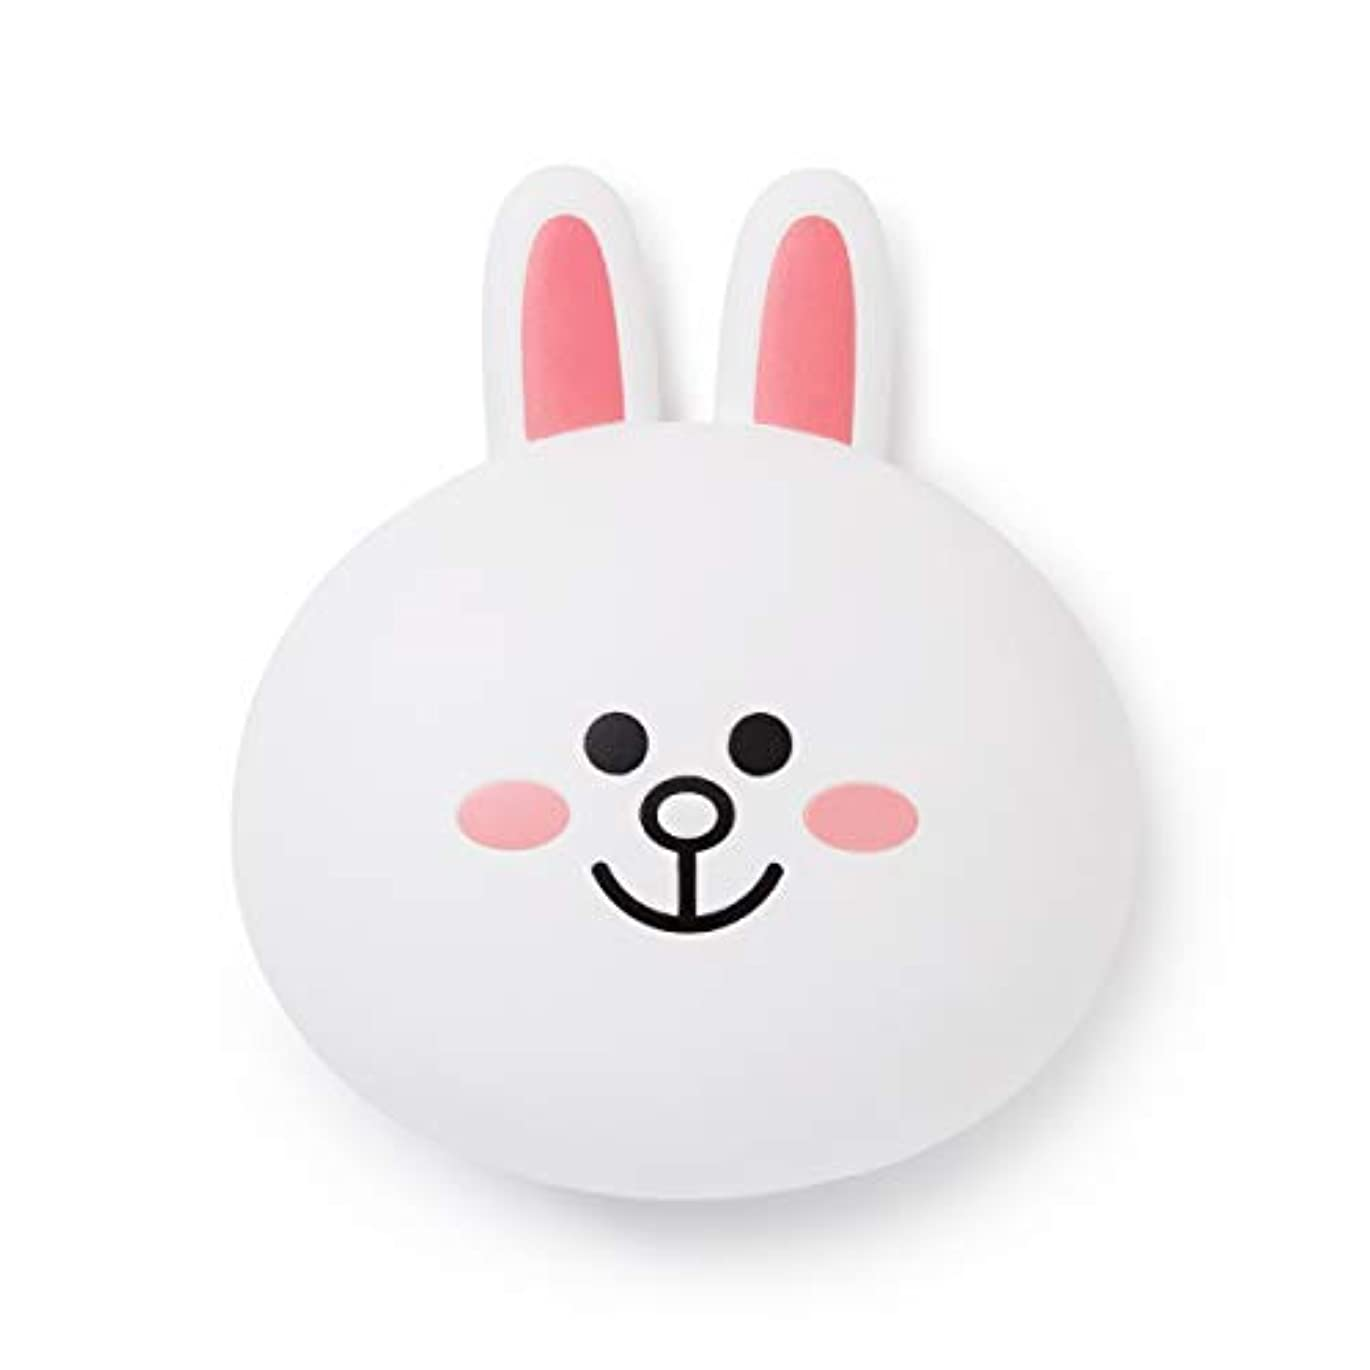 ひばり蓄積する温帯LINE FRIENDS Hair Brush Accessories - CONY Character Travel Comb Accessory with Mirror for Women, White [並行輸入品]